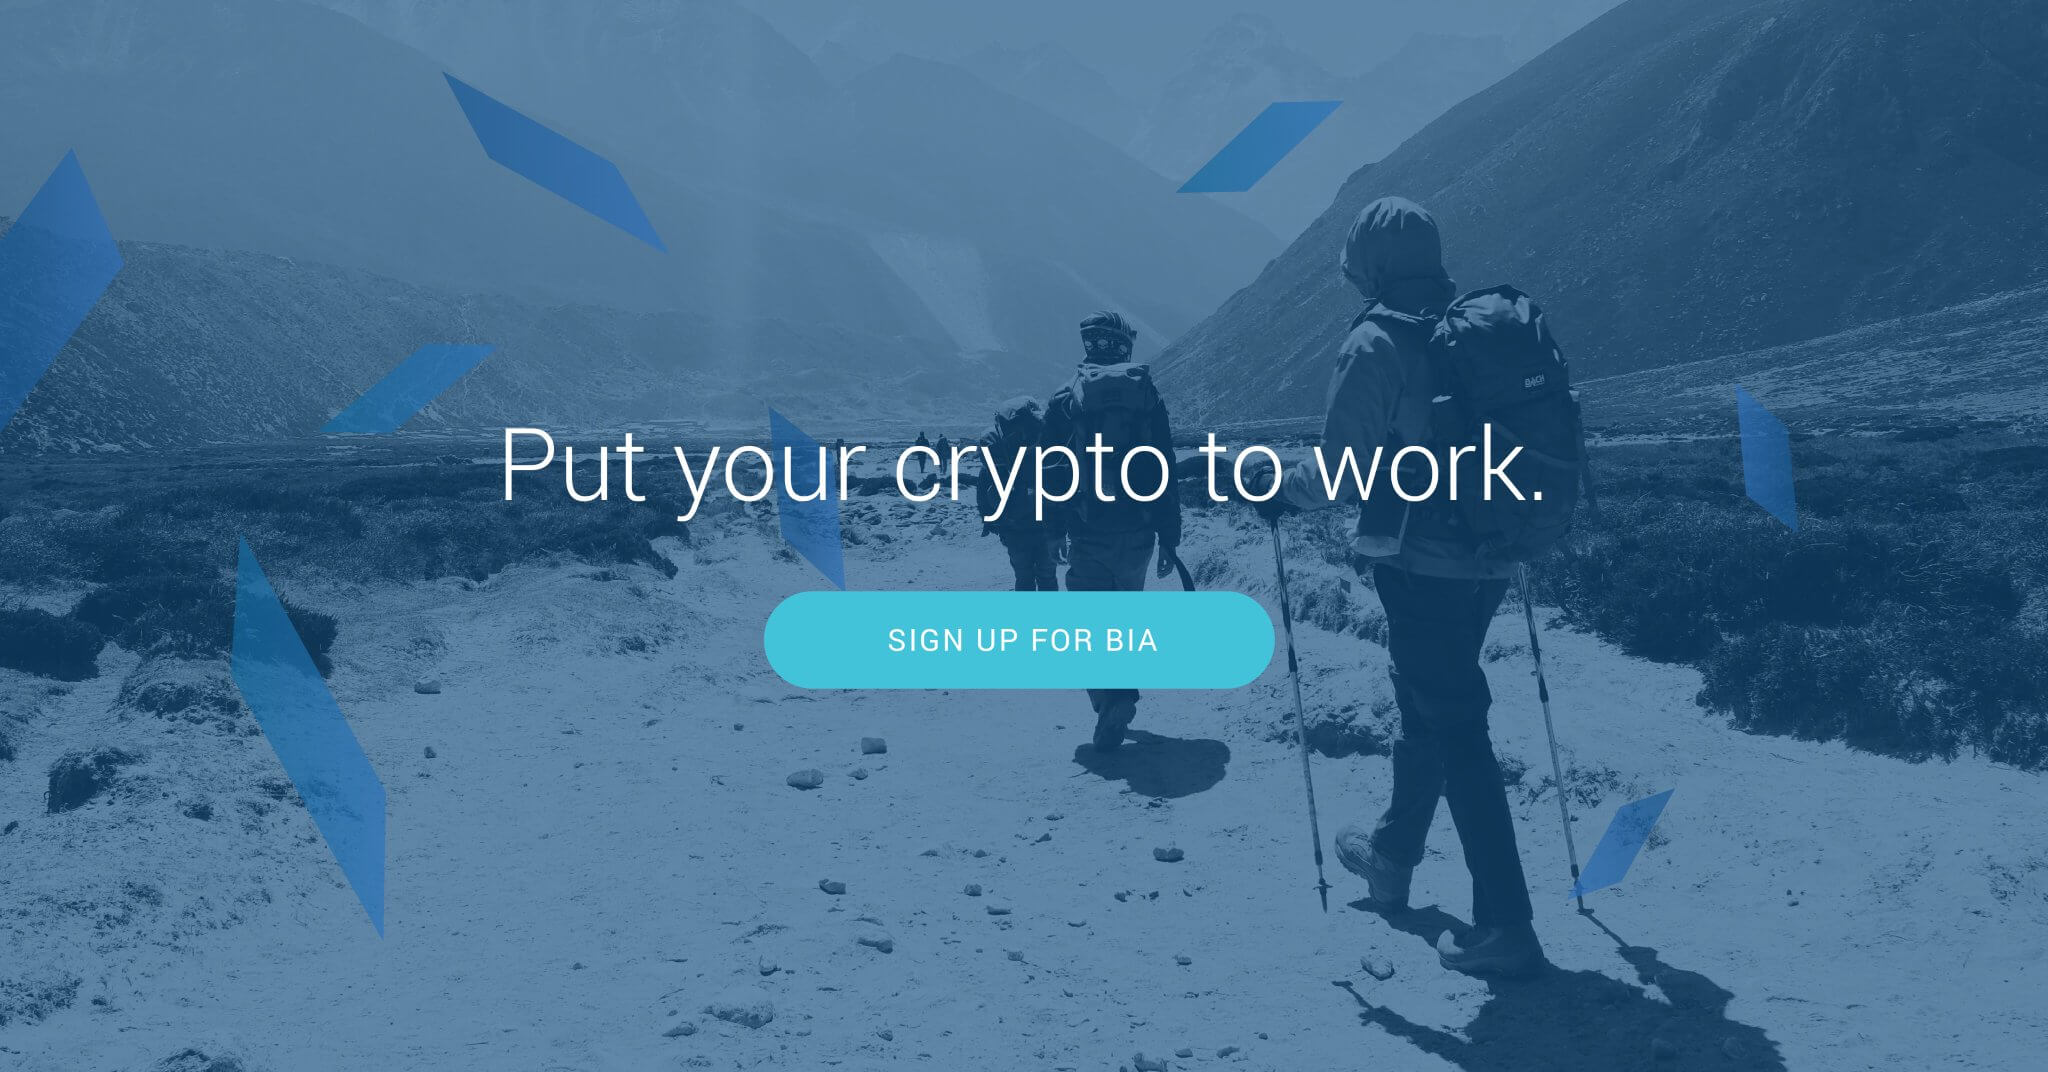 BlockFi | Cryptocurrency lending | Cryptocurrency savings account | Bitcoin | Ethereum